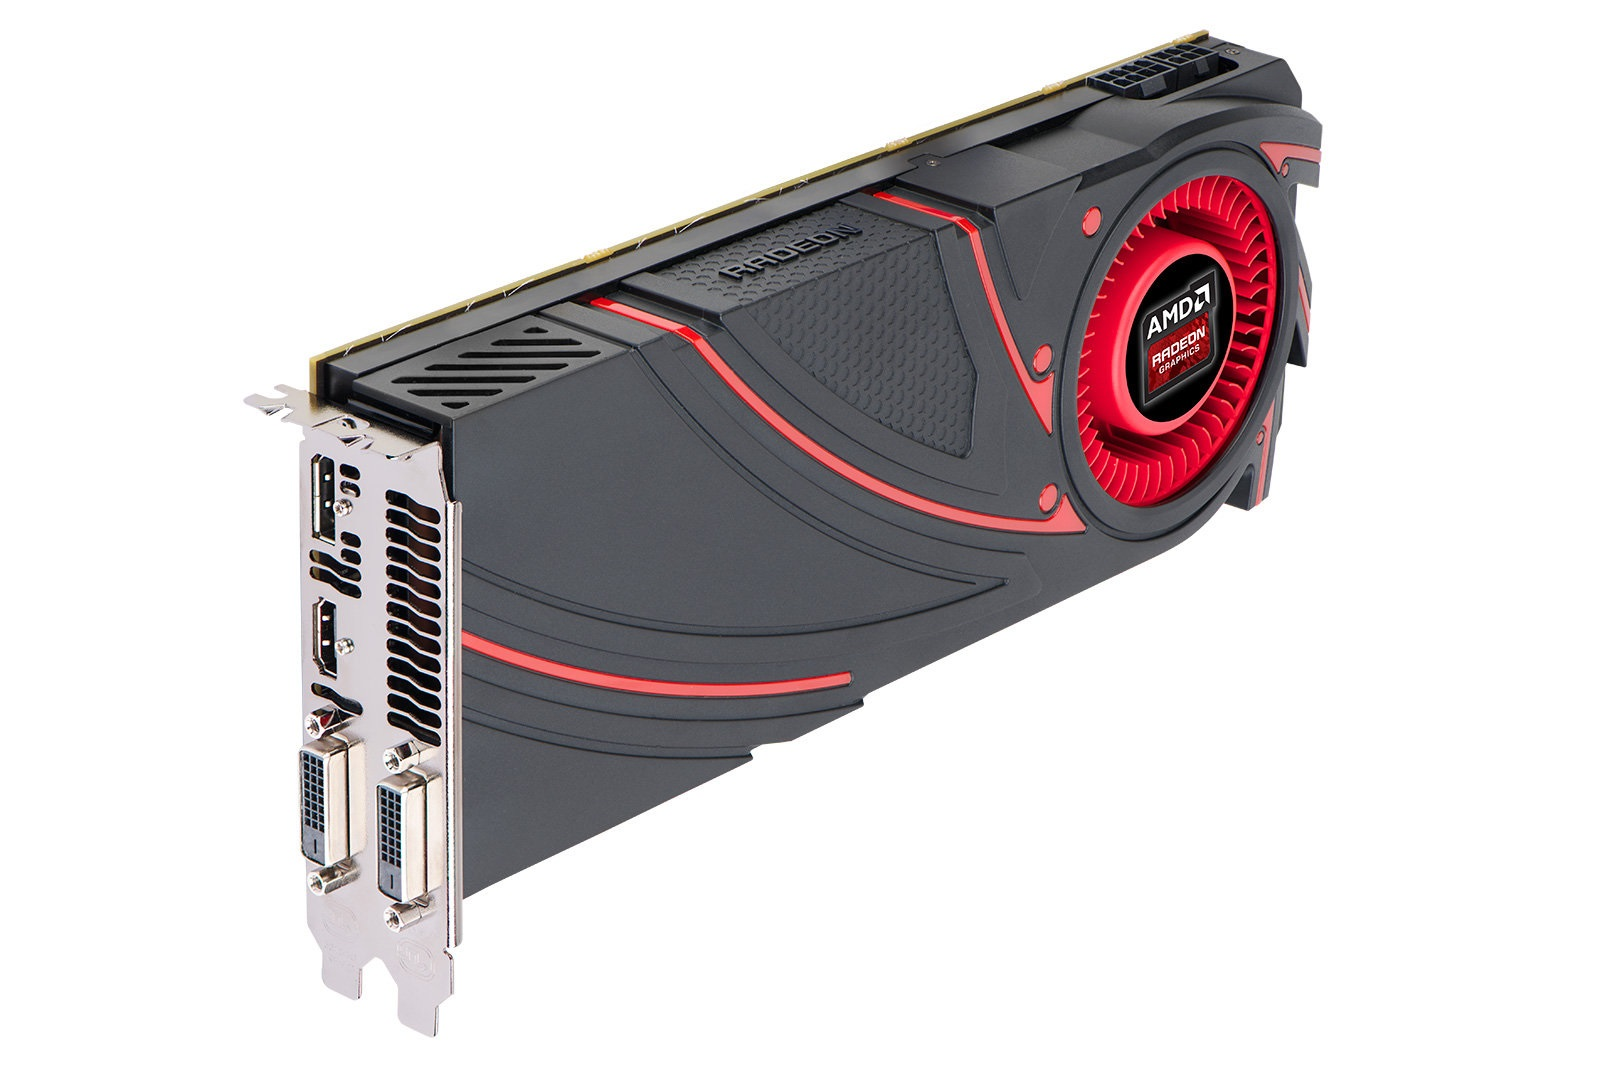 AMD Radeon R9 290X And Radeon R9 290 Specifications Confirmed Full Hawaii Chip Features 2816